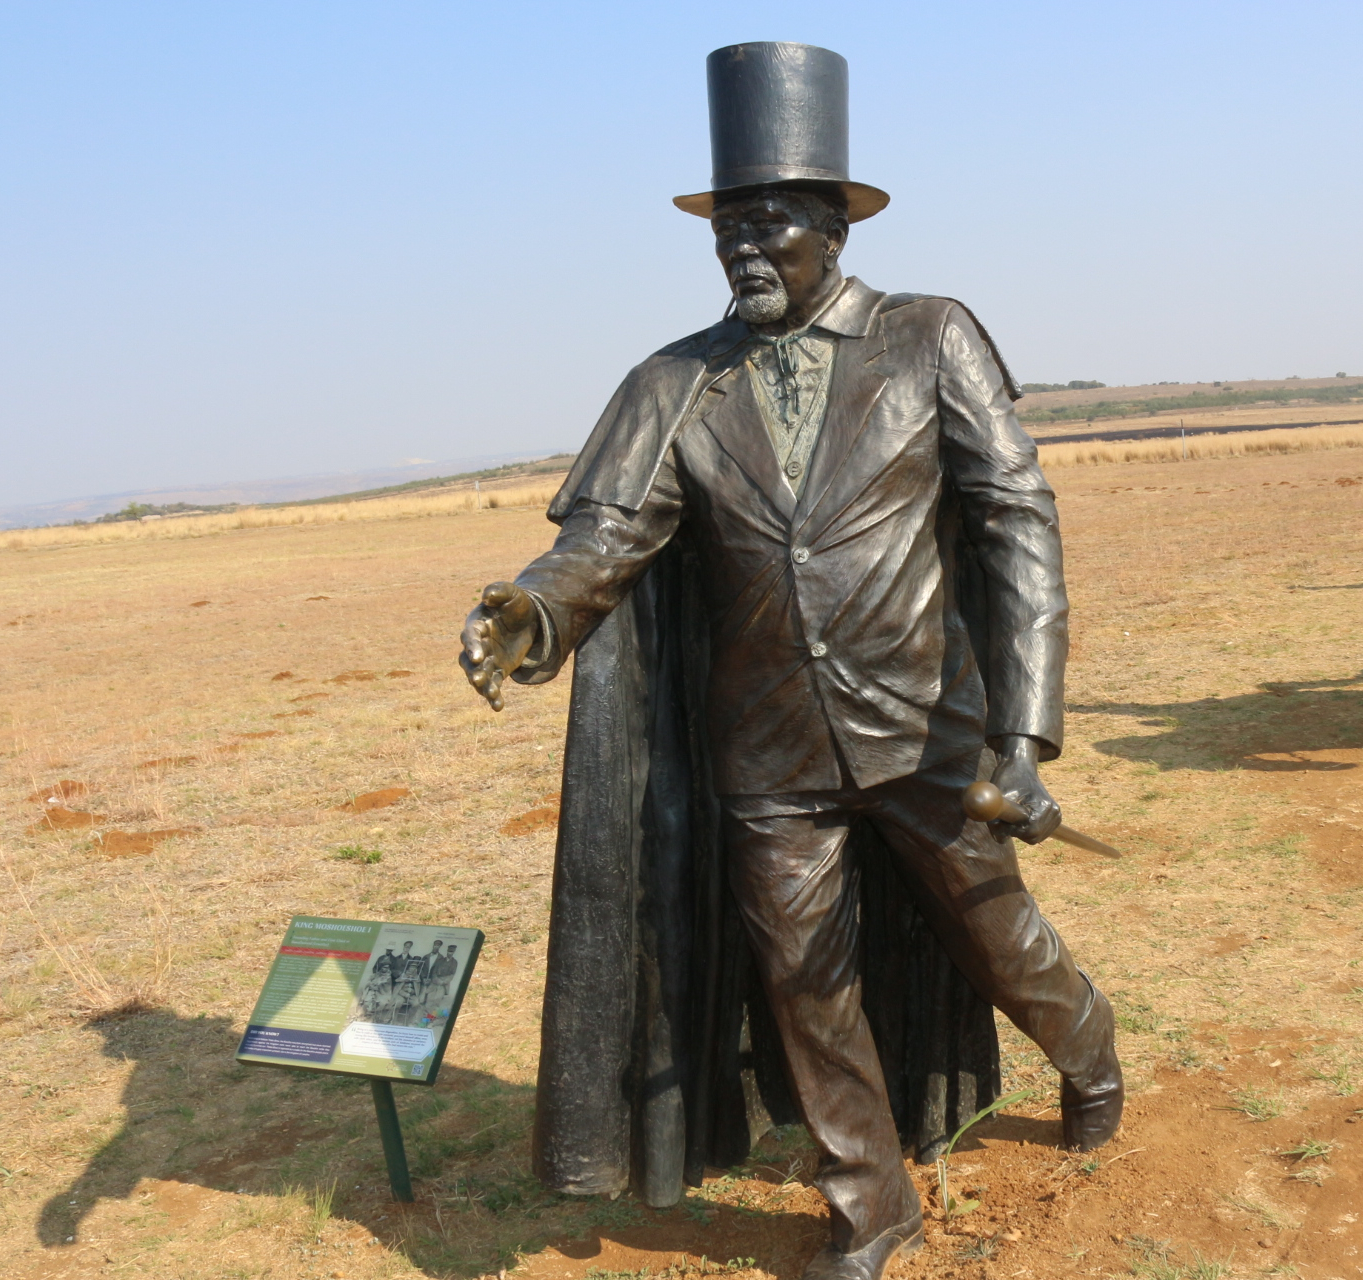 Statue of the Lesotho Founder: King Moshoeshoe